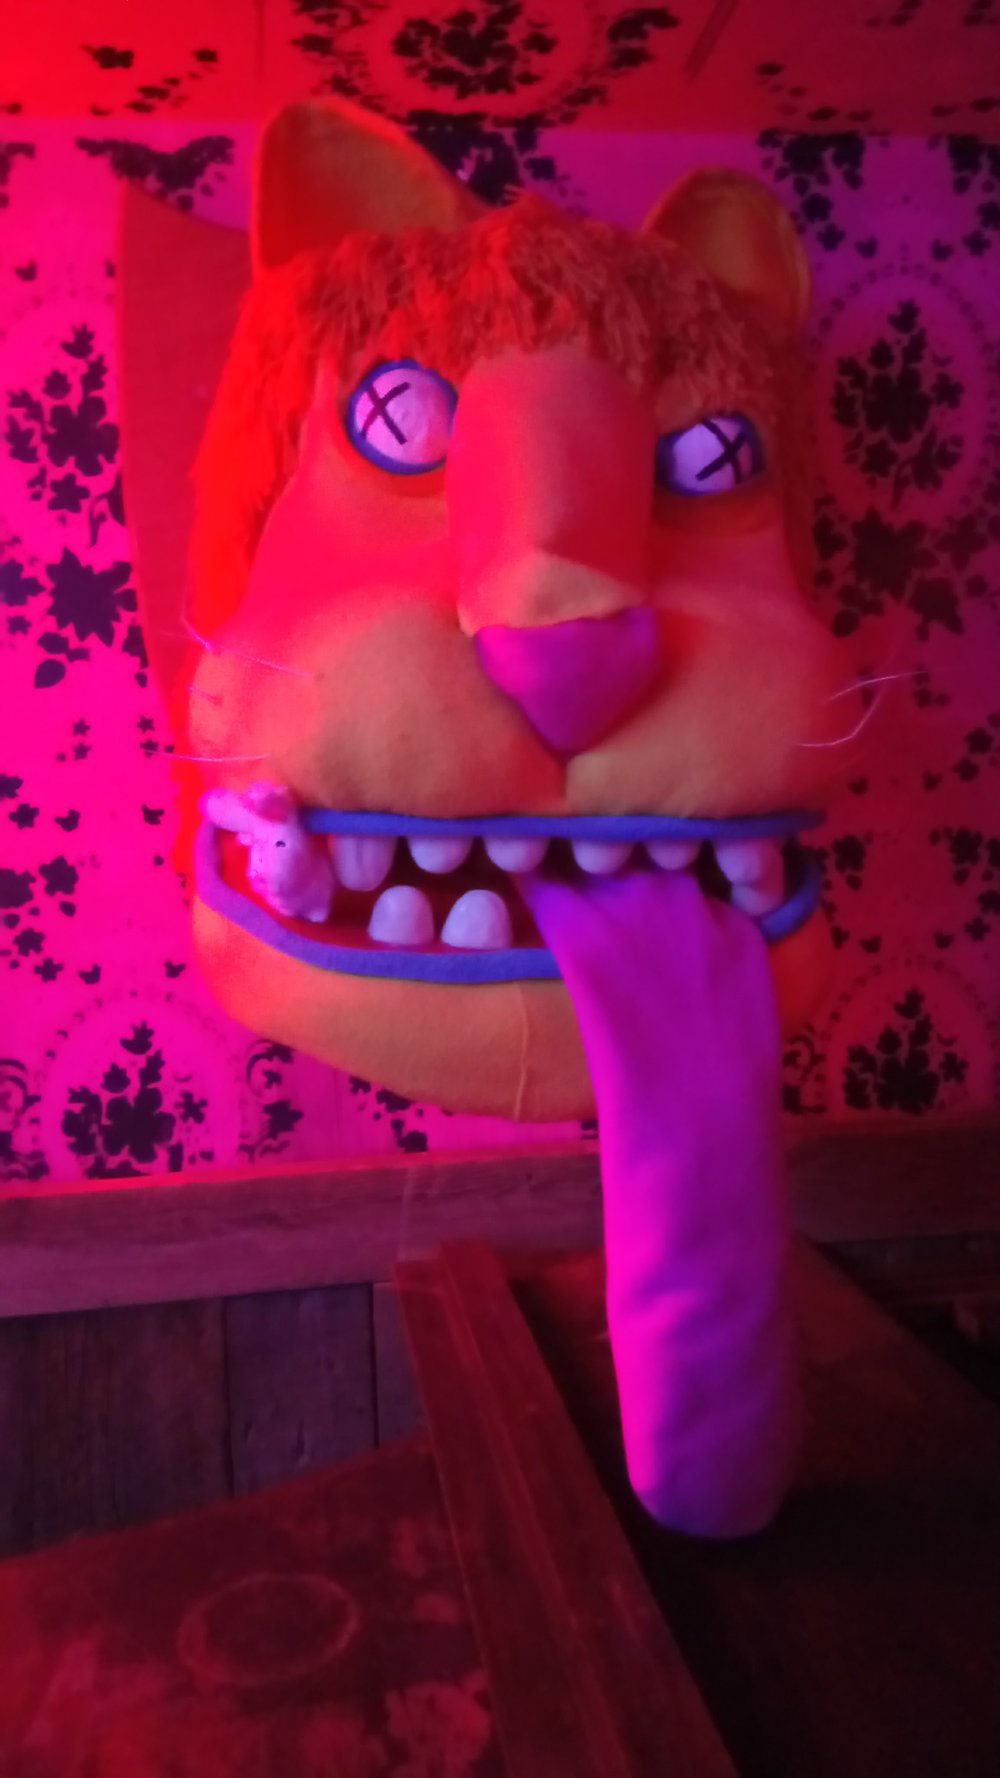 I met a strange lion with a missing tooth. So, I tried to help him out by becoming a tooth. It felt right in this place, that you could become anything. Anything at all.